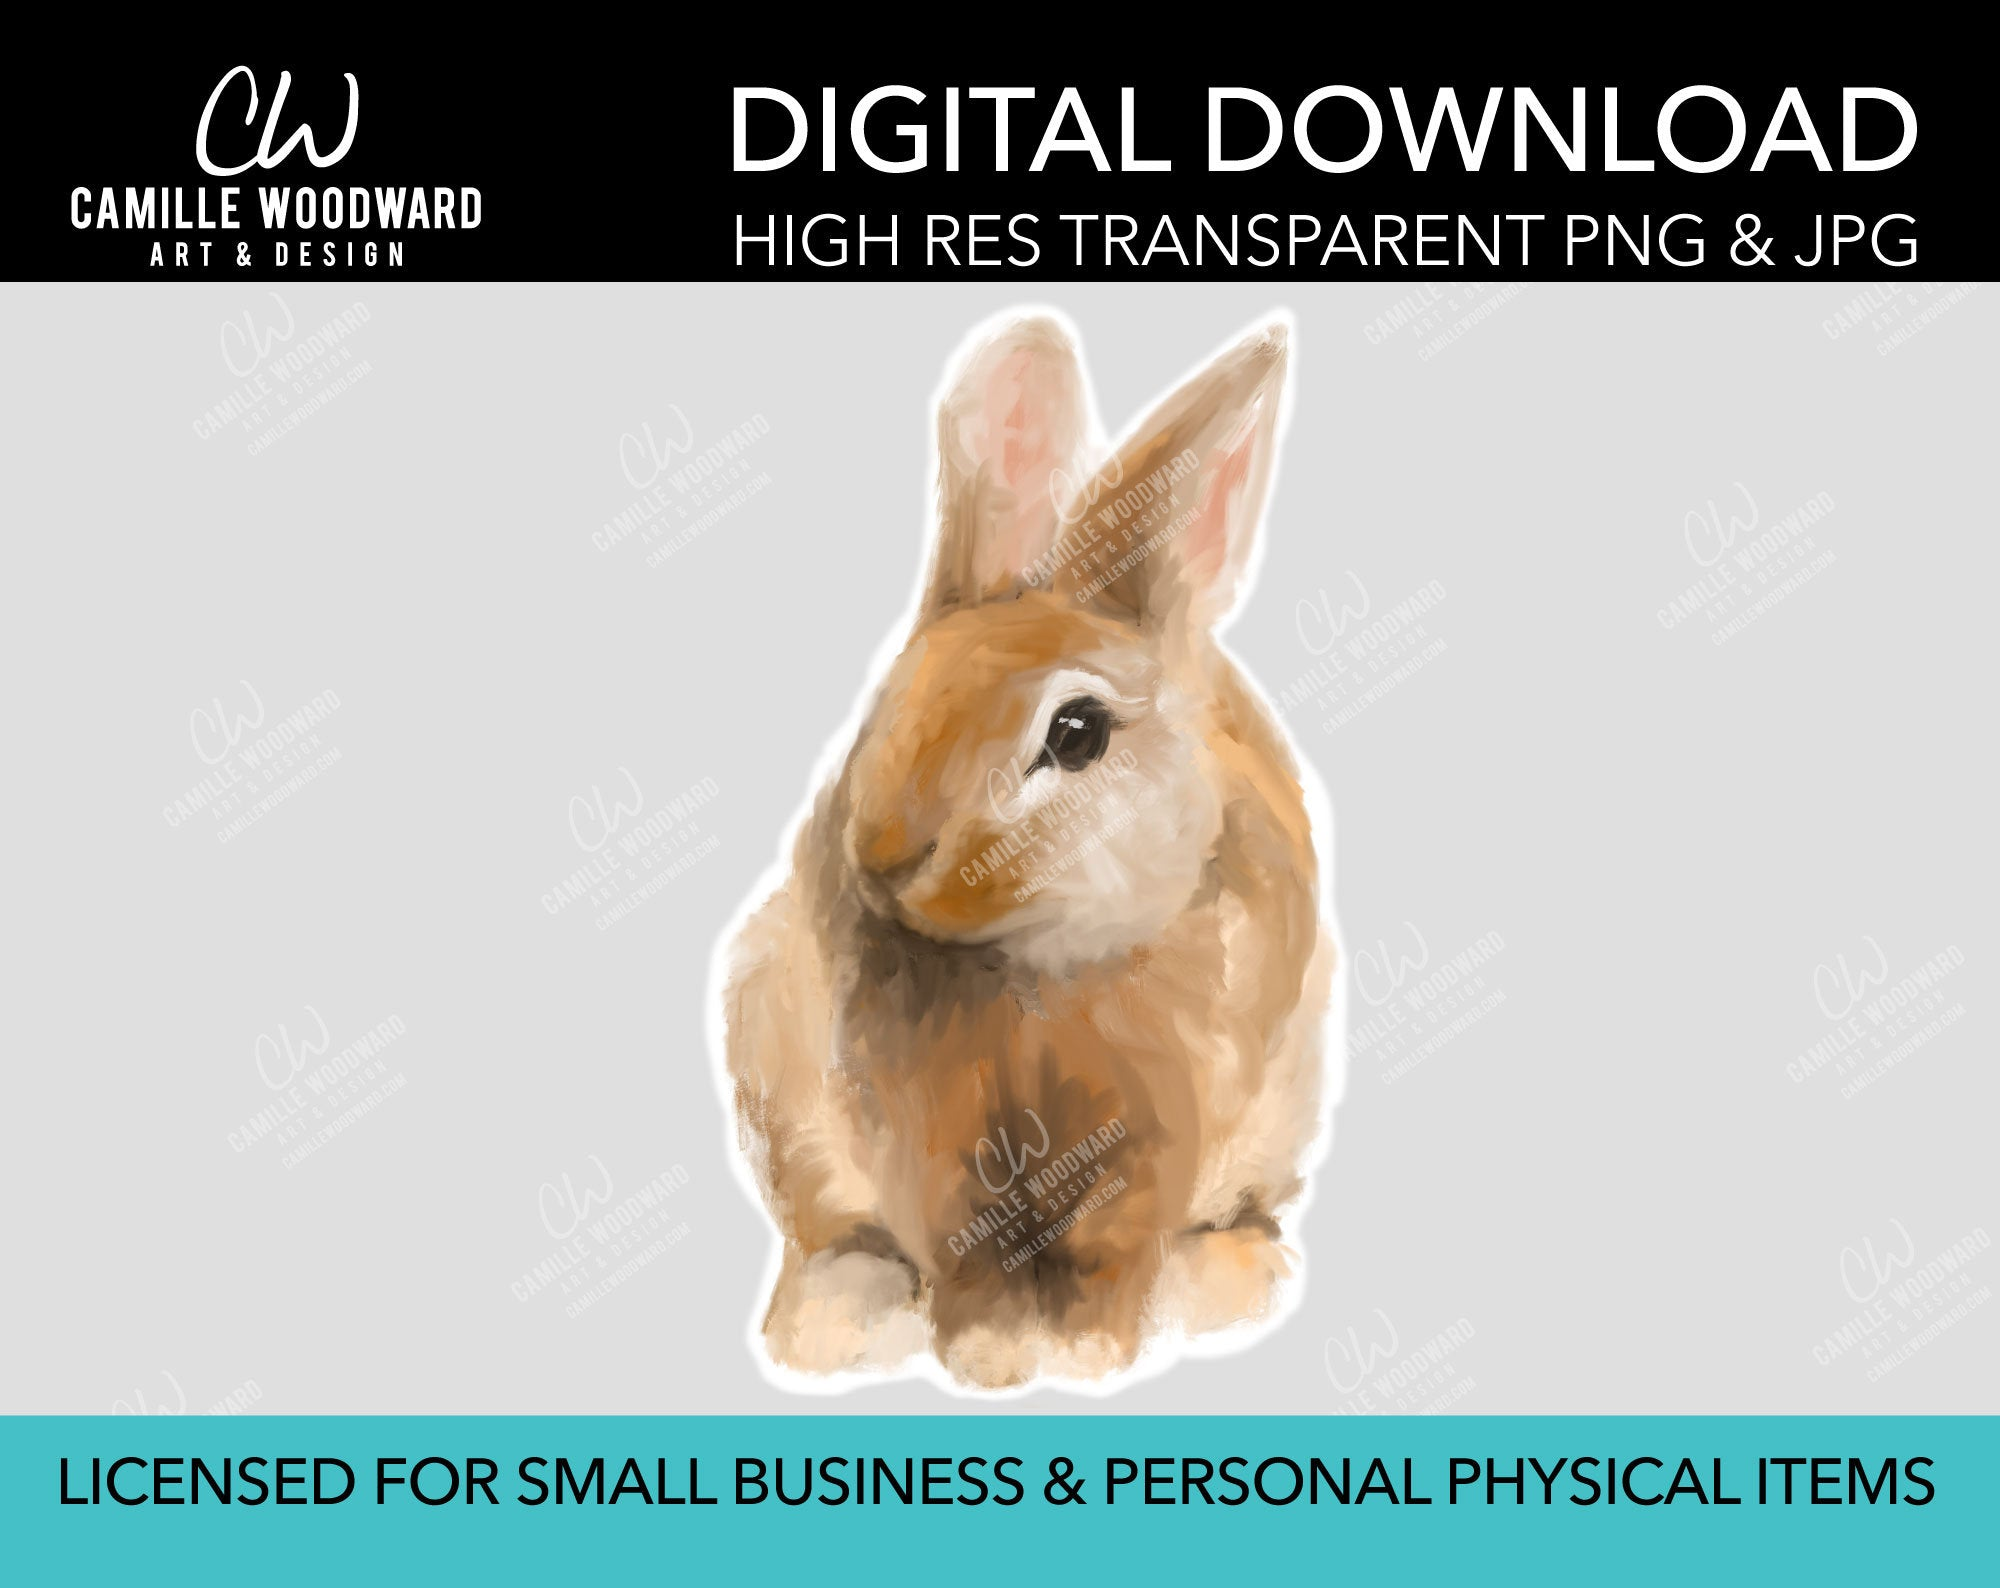 Bunny Rabbit PNG, Bunny Rabbit Transparent Isolated, Easter, Spring, Digital Painting - Digital Download Sublimation